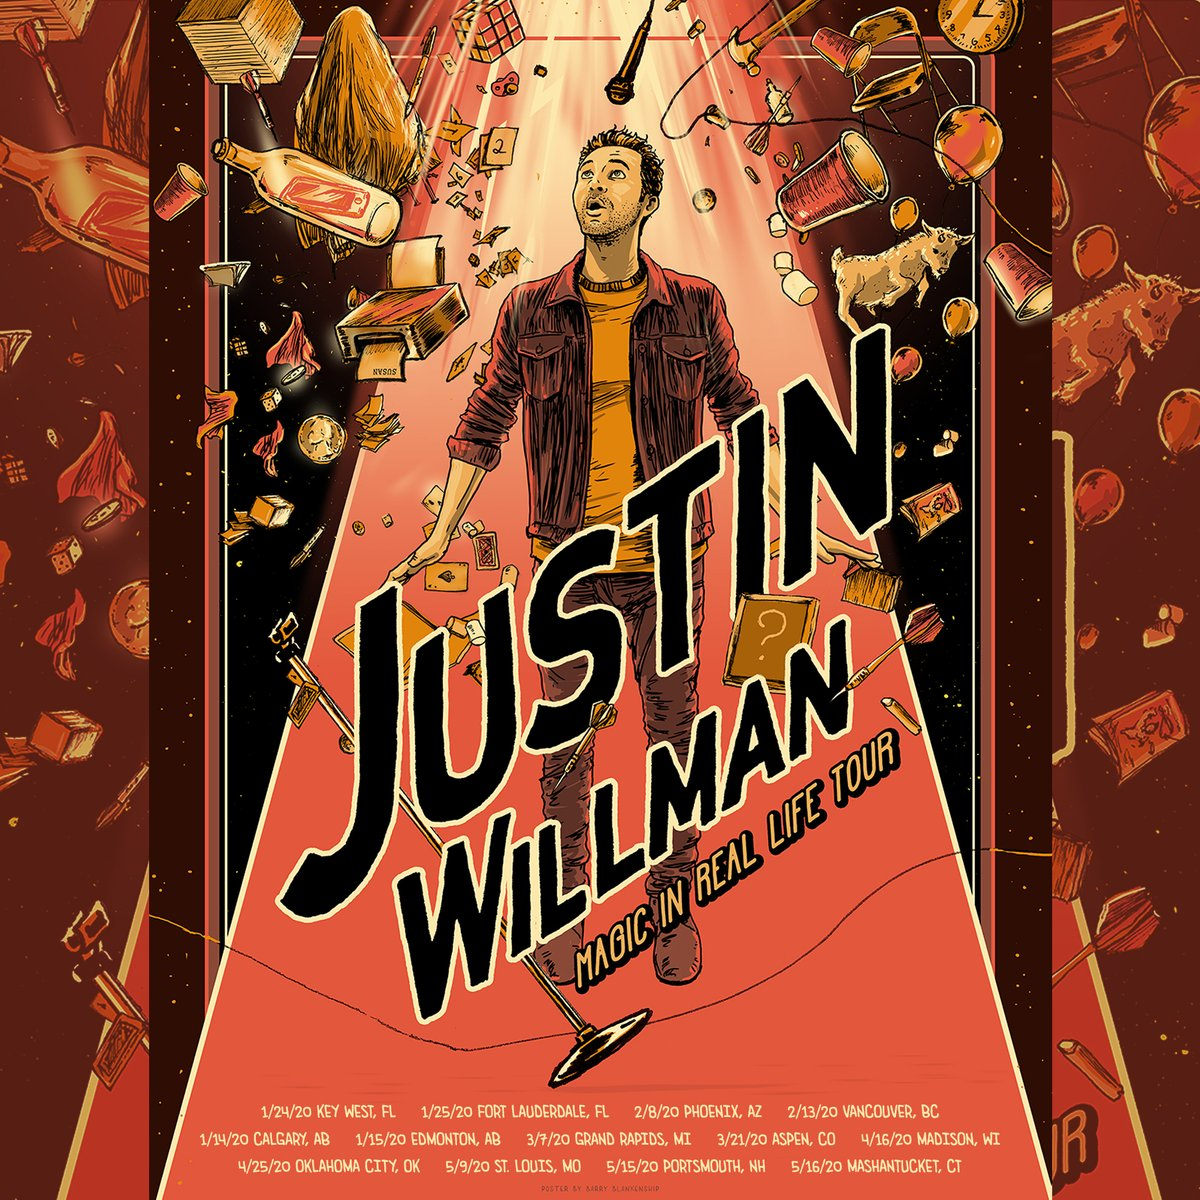 Very excited for my upcoming string of shows on the #MagicIRLtour starting up again this weekend! If you want to go to a show, all tix can be found on my website! justinwillman.com